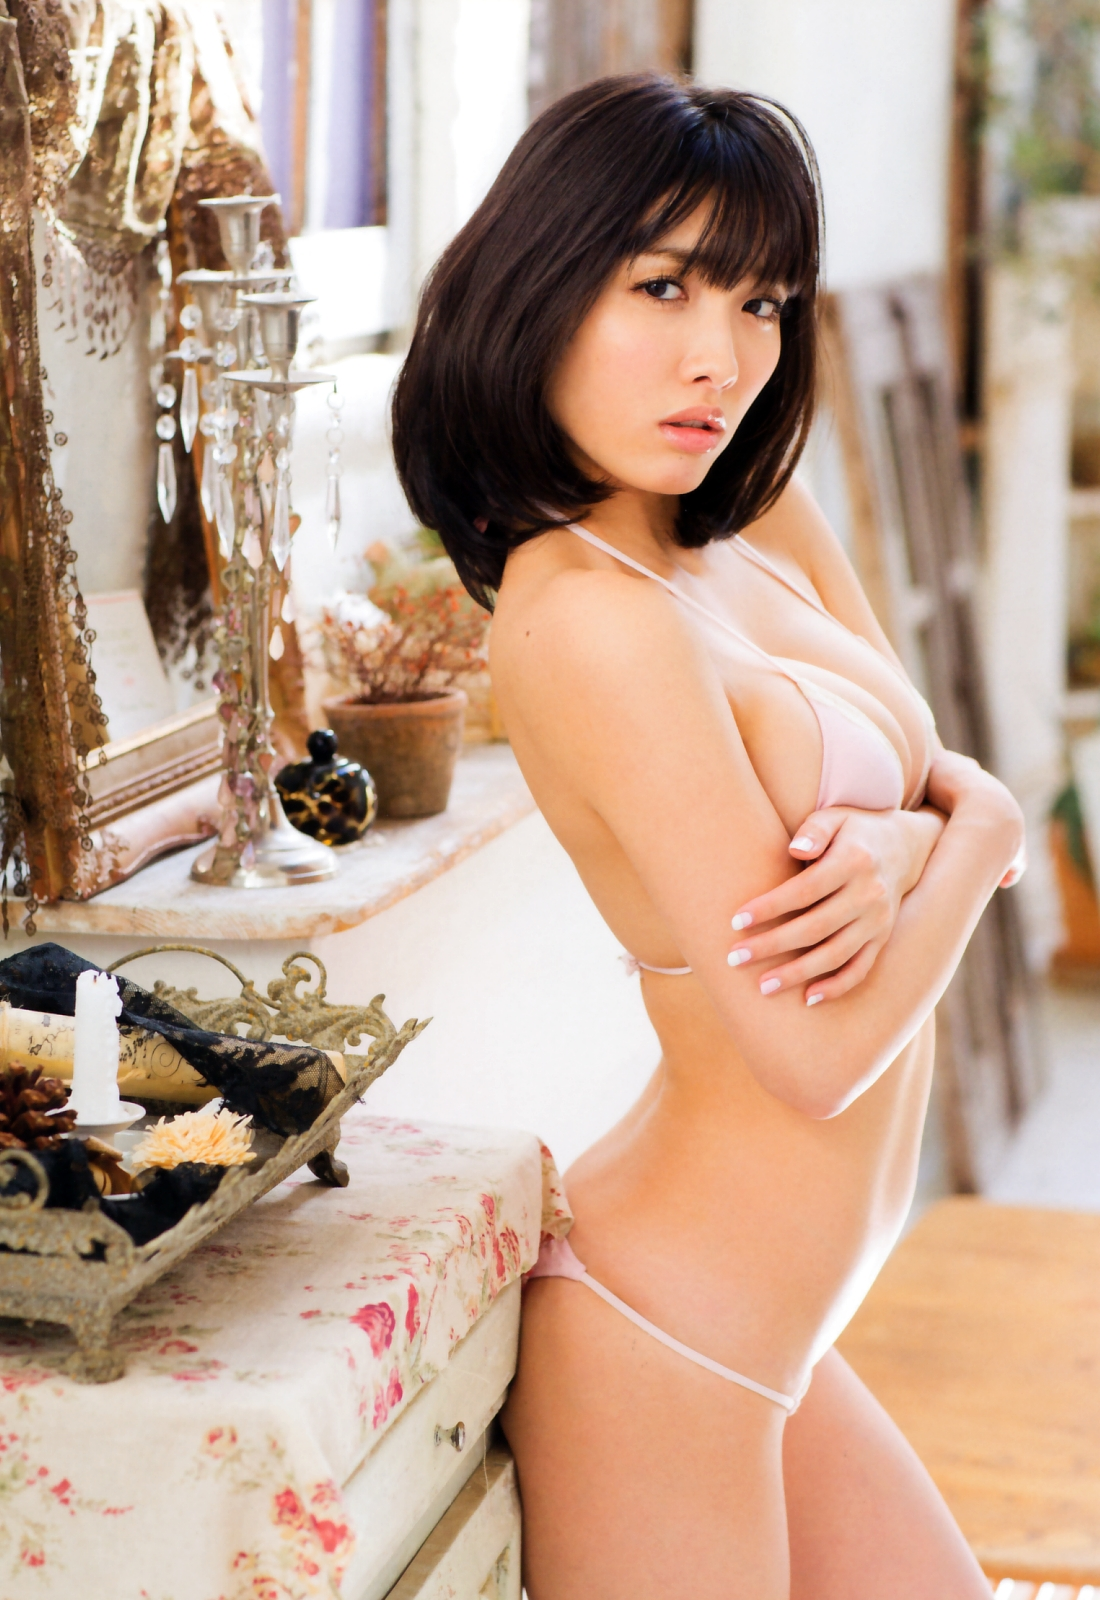 Its soft and makes you want to touch it Anna Konno 025